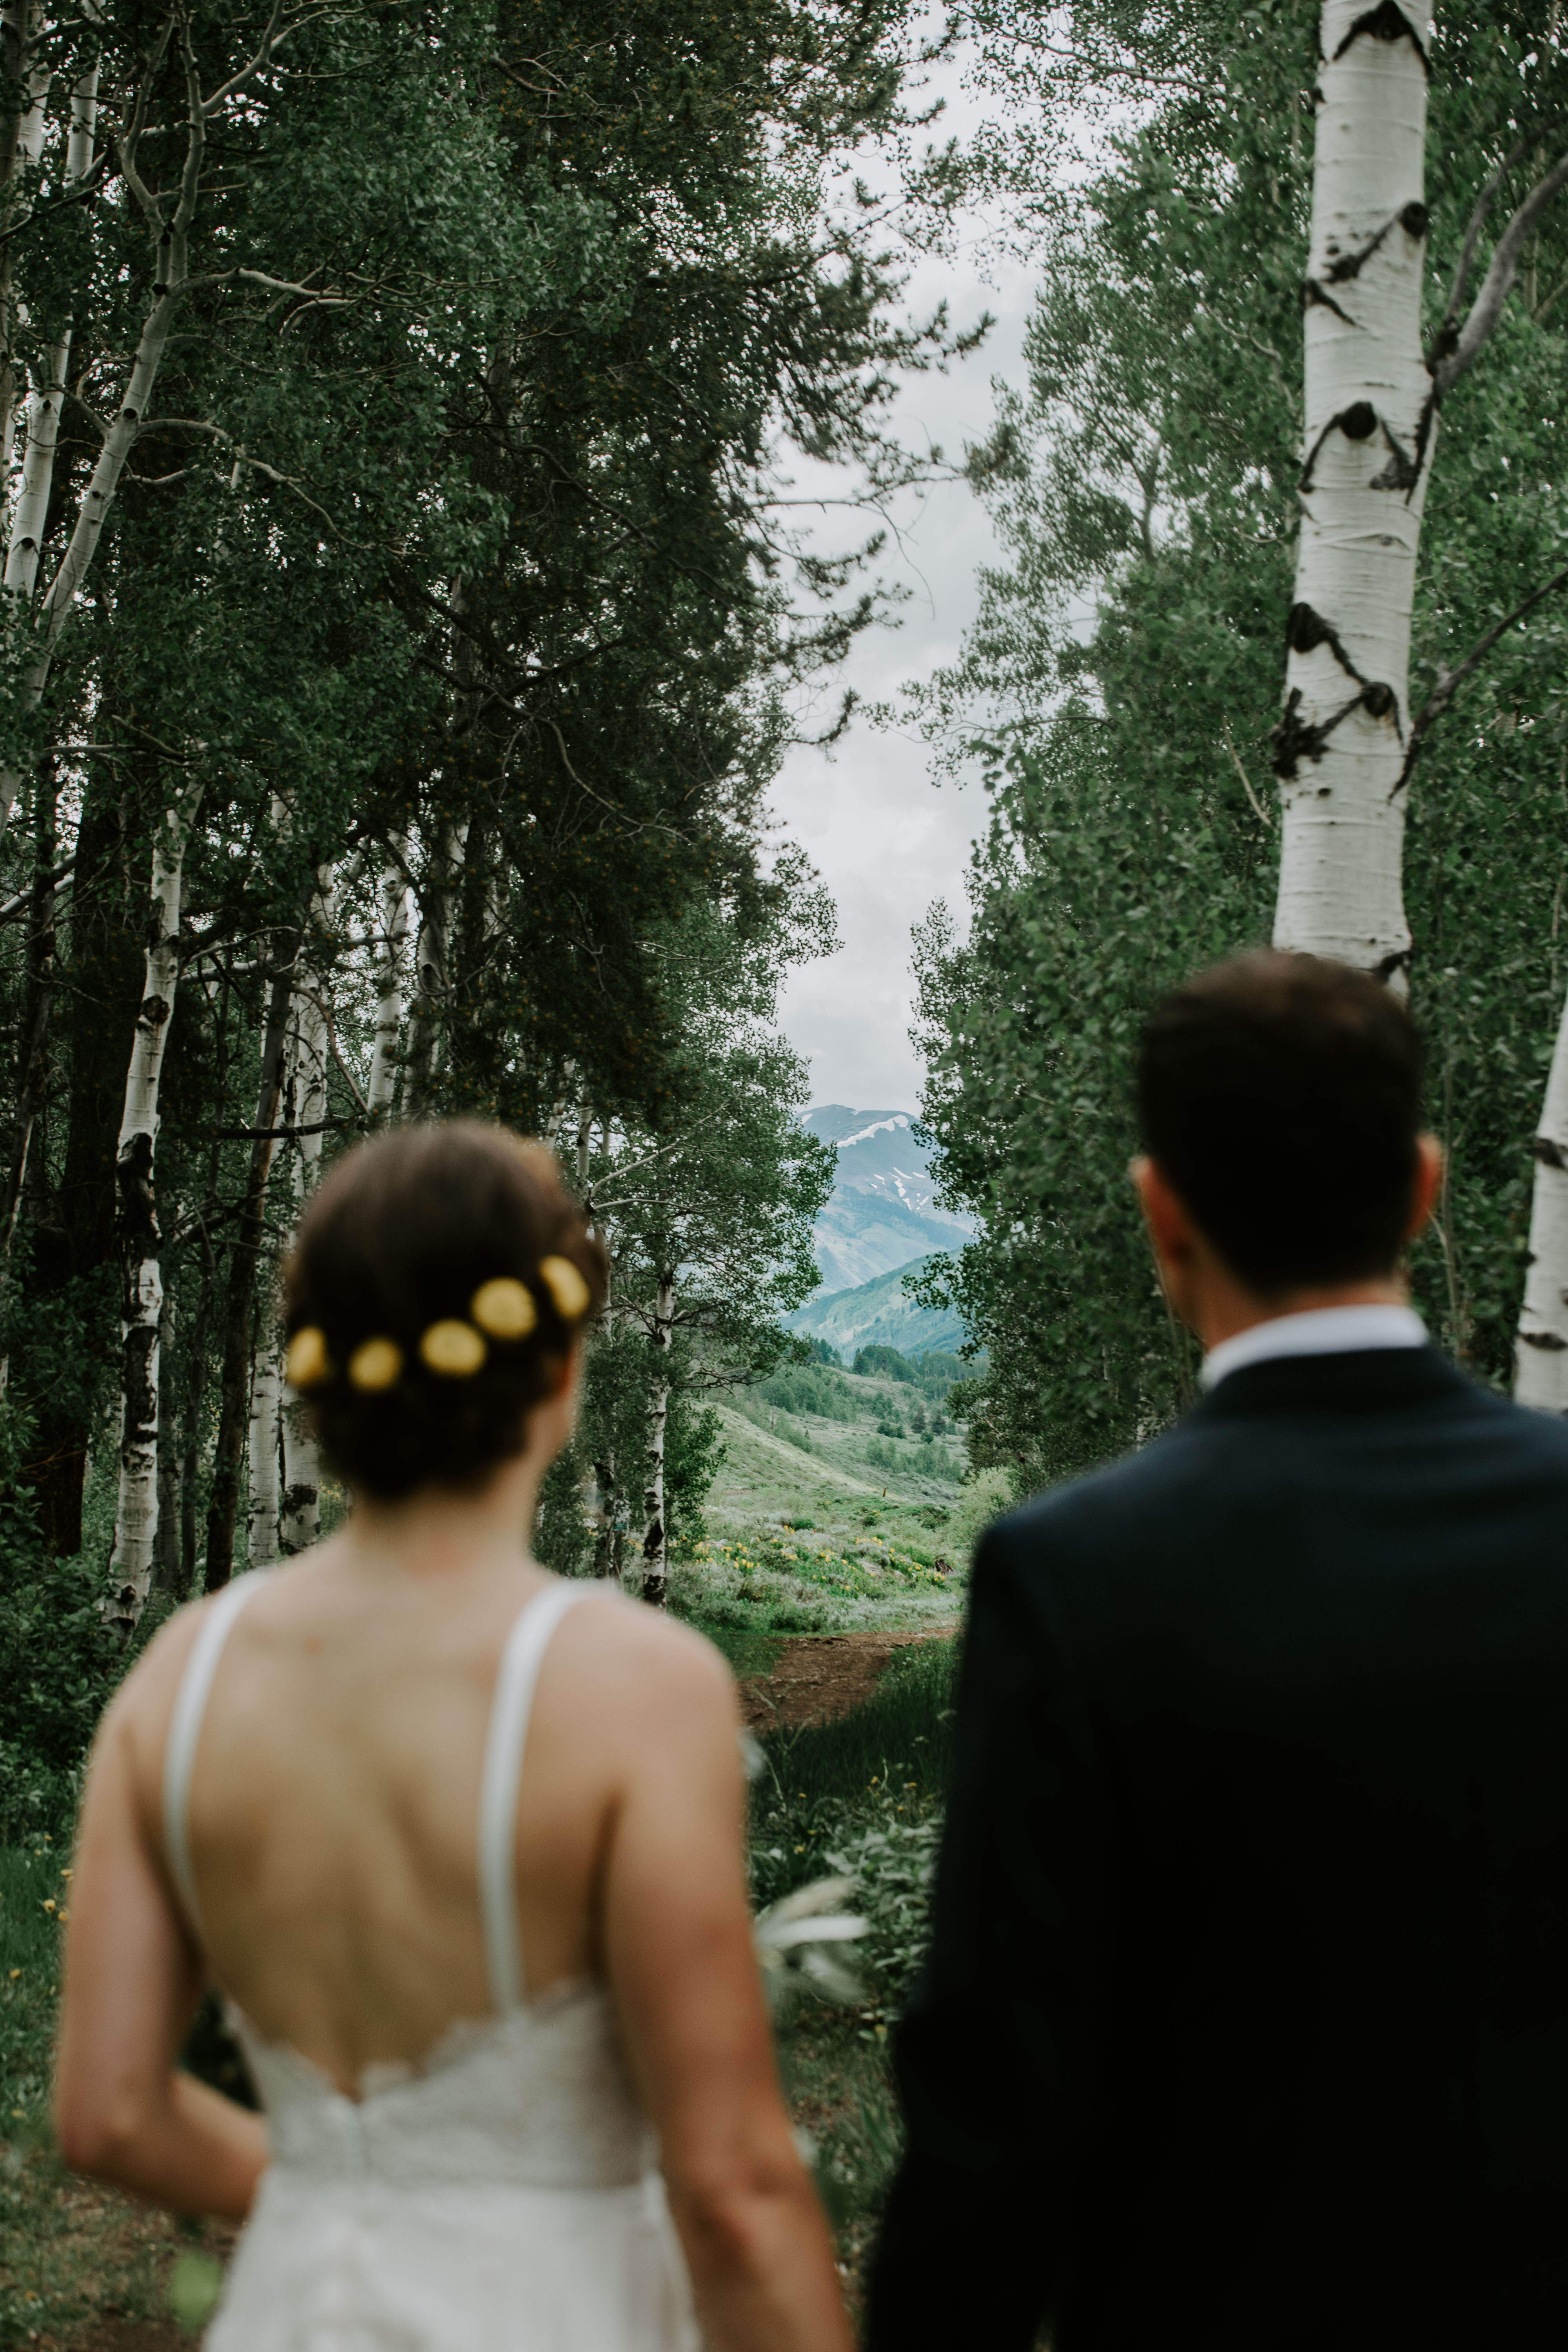 Laura_Alexe_Wedding_Crested_Butte_MegONeillPhotography__180616_83